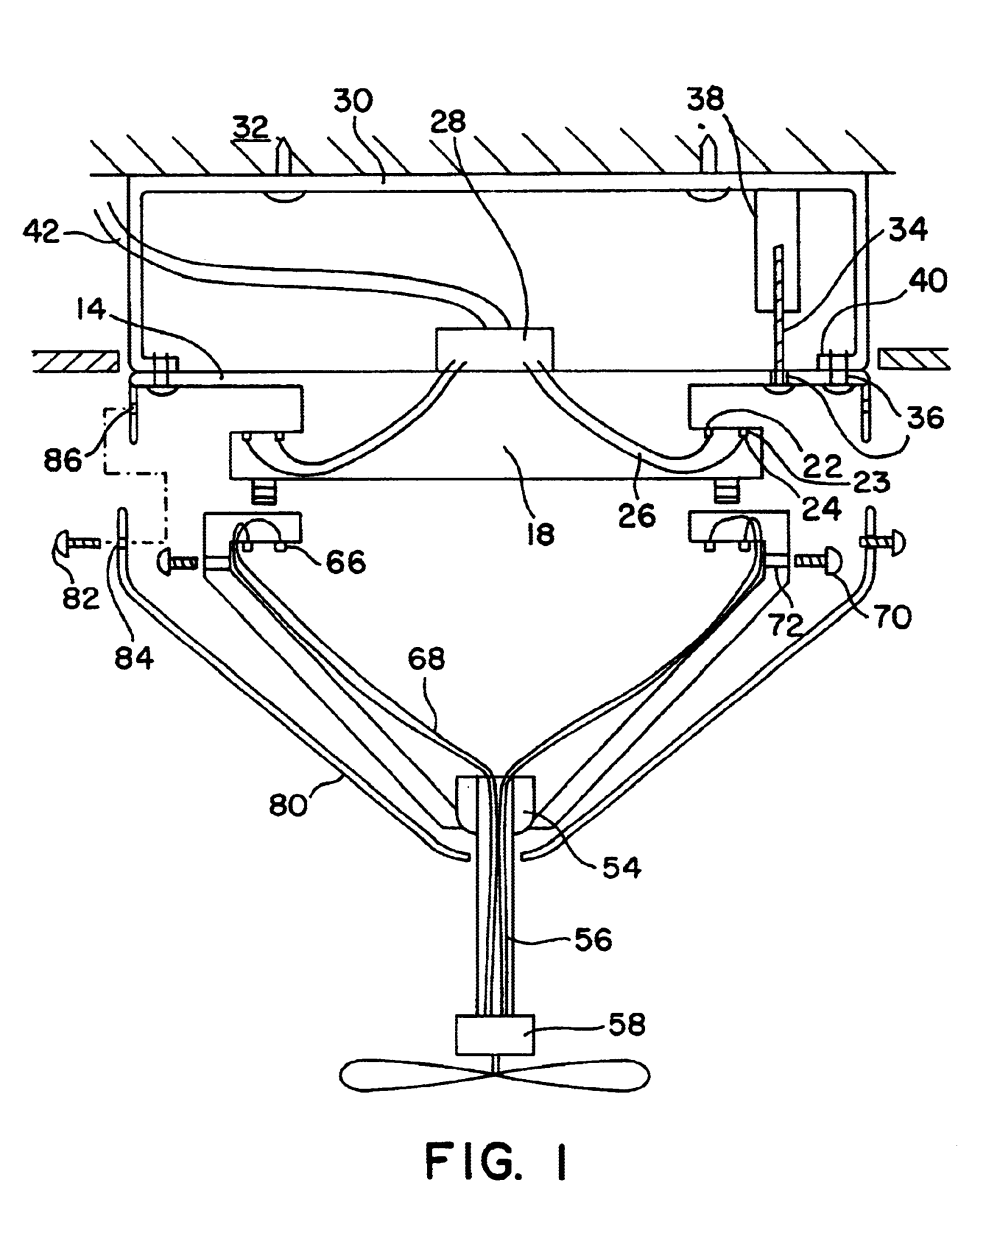 medium resolution of us06634901 20031021 d00001 patent us6634901 quick connect device for electrical fixture encon ceiling fan wiring diagram